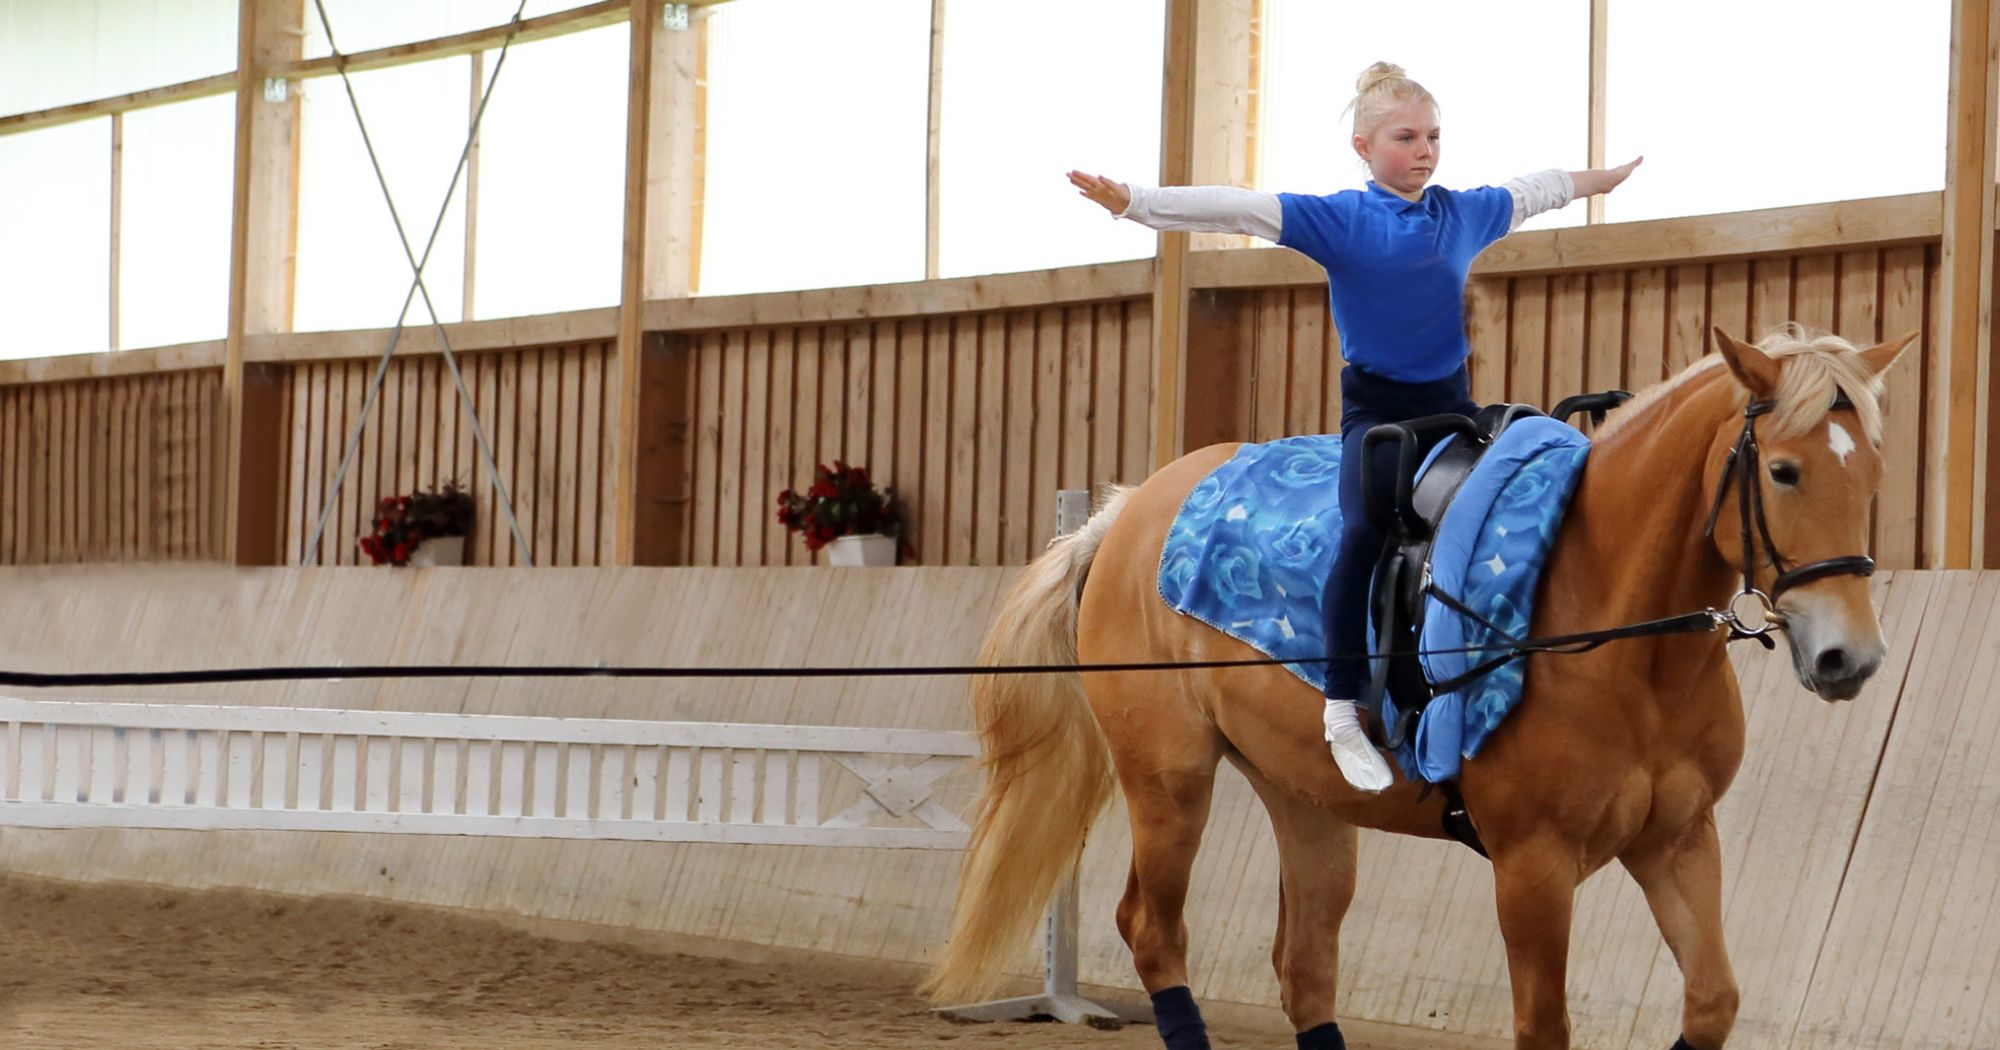 Getting Into Vaulting